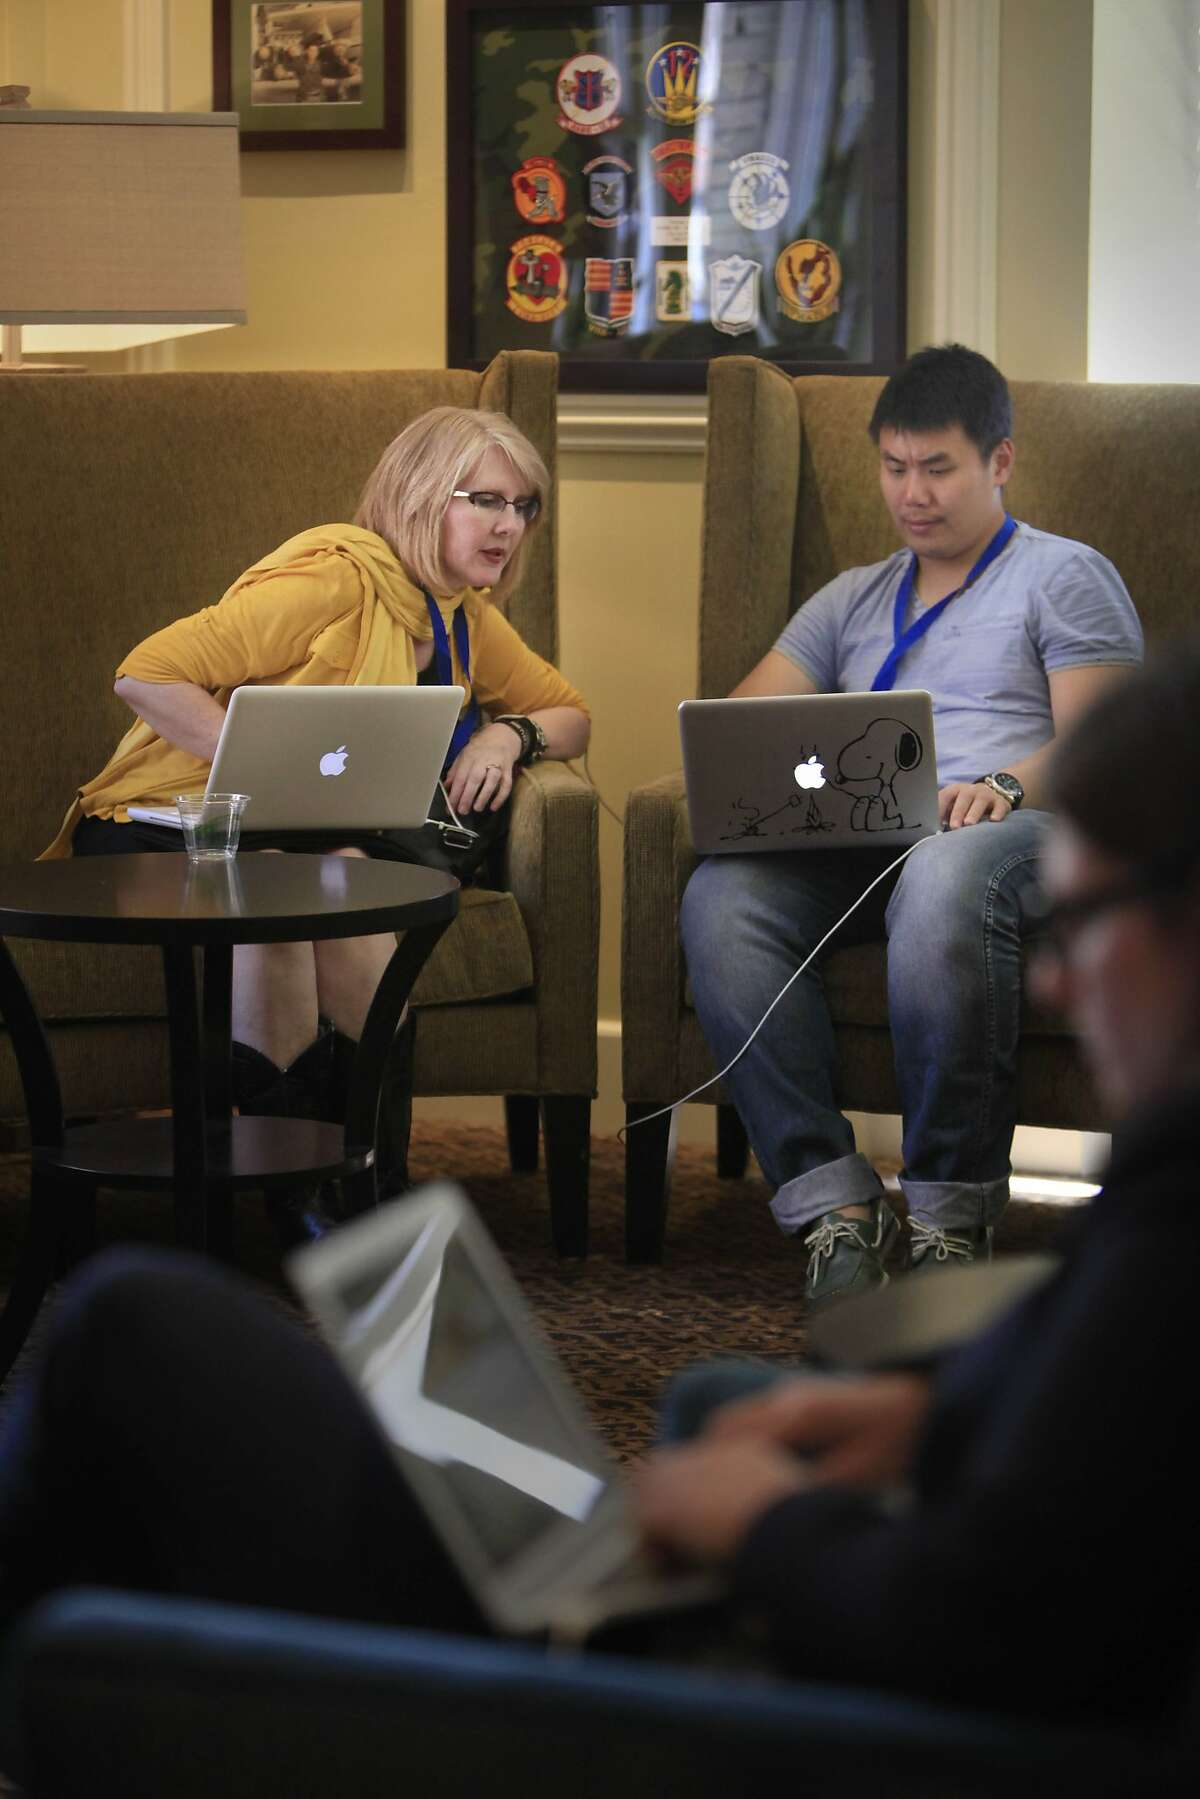 Kelly Bean (left) of African Road talks with John Zhang of Zampl at the sharing conference in S.F.